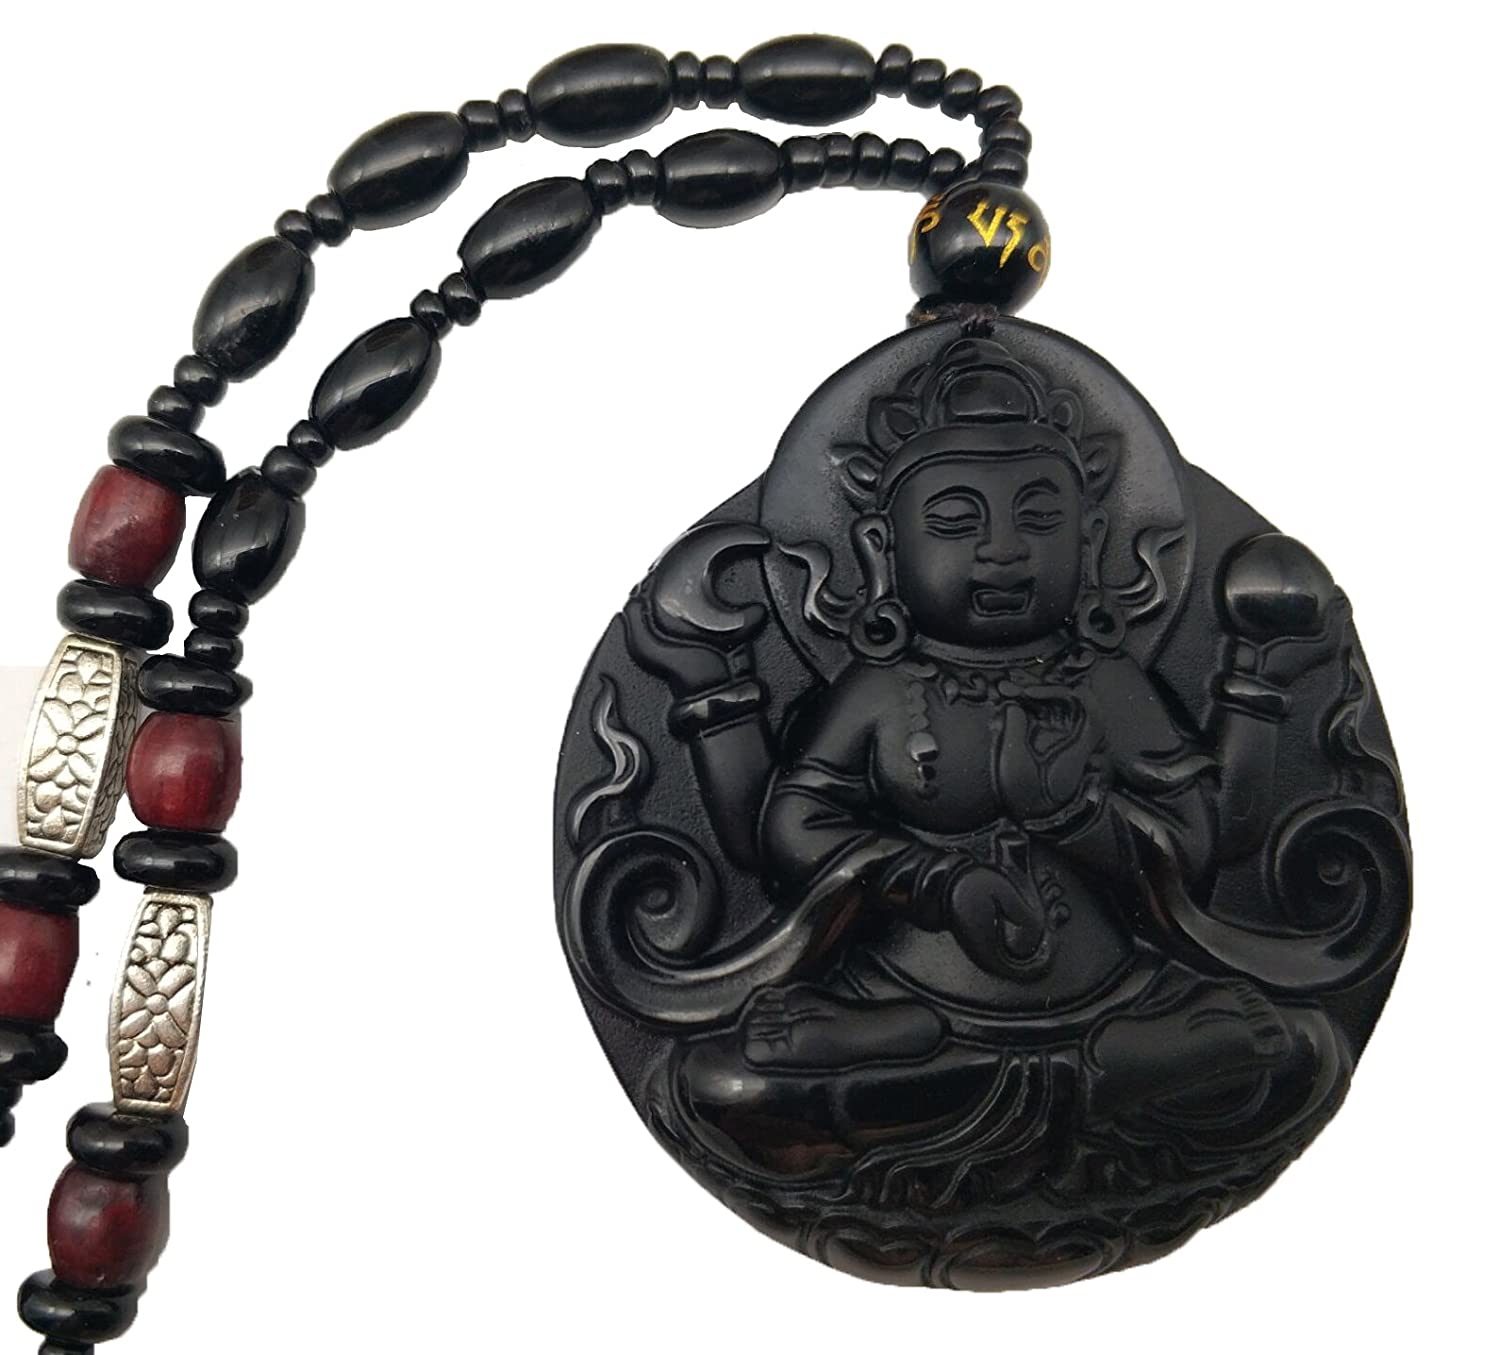 Pure Natural Obsidian Four Arm Guan Yin Kwan-yin Boddhisattva Necklace Pendant